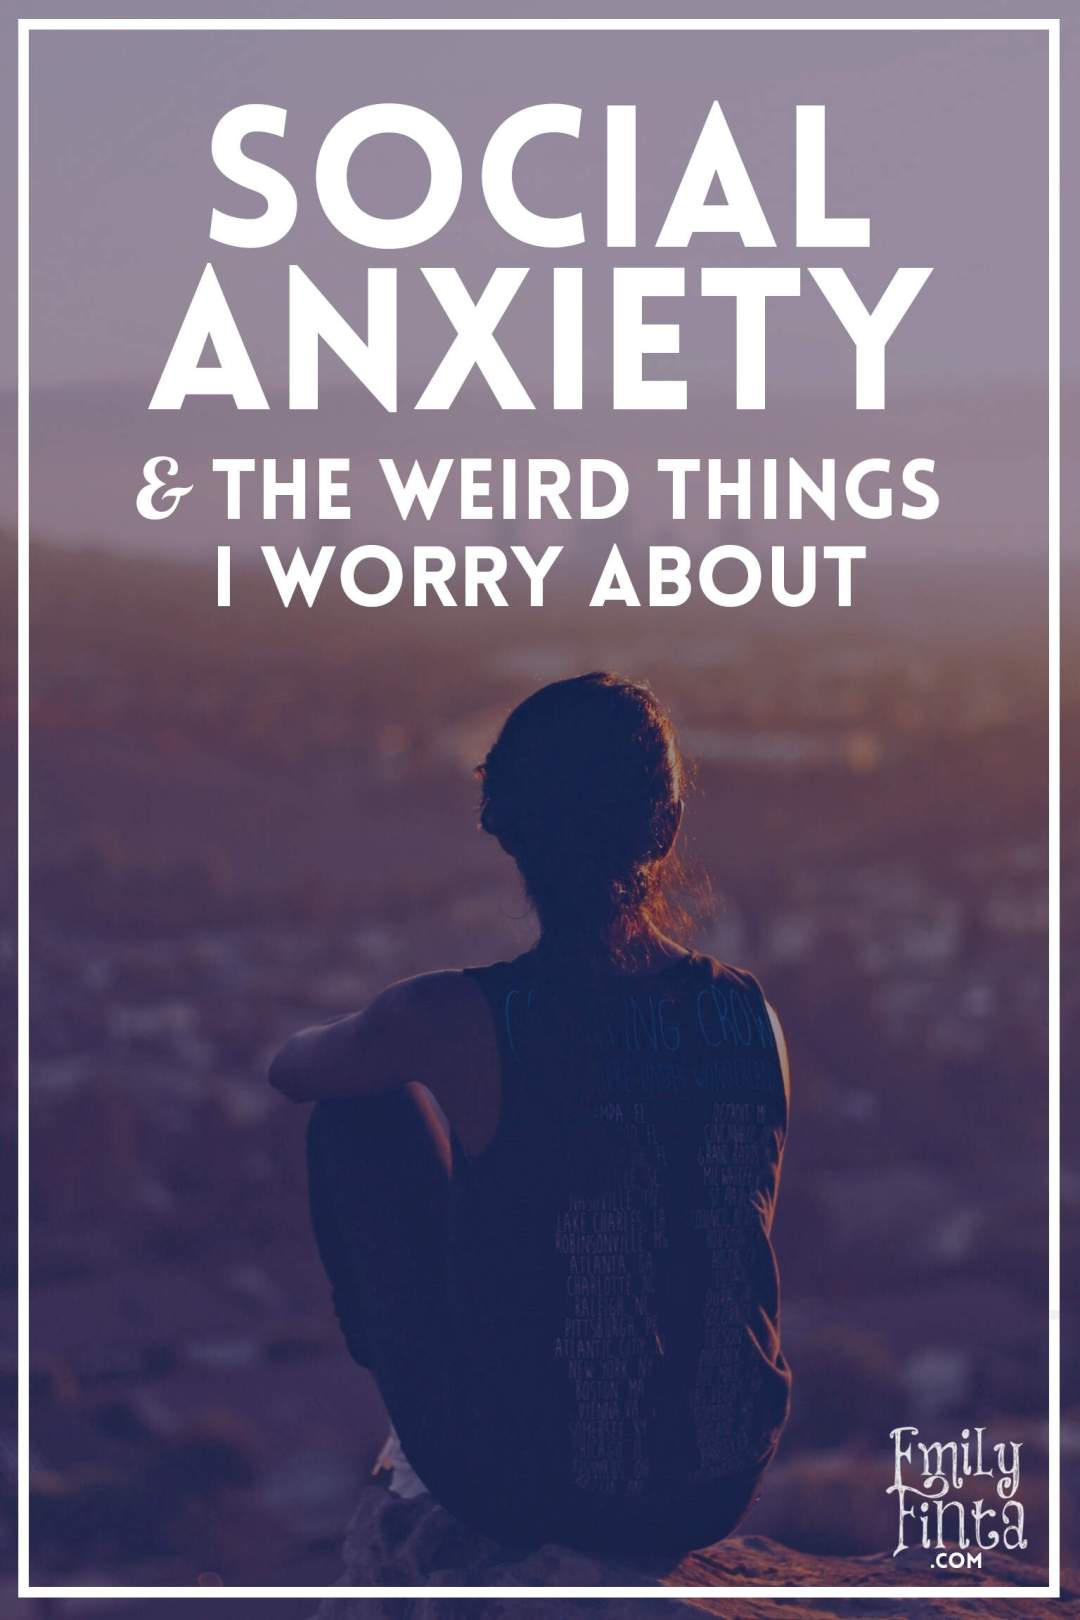 Emily Finta Social Anxiety & The Weird Things I Worry About